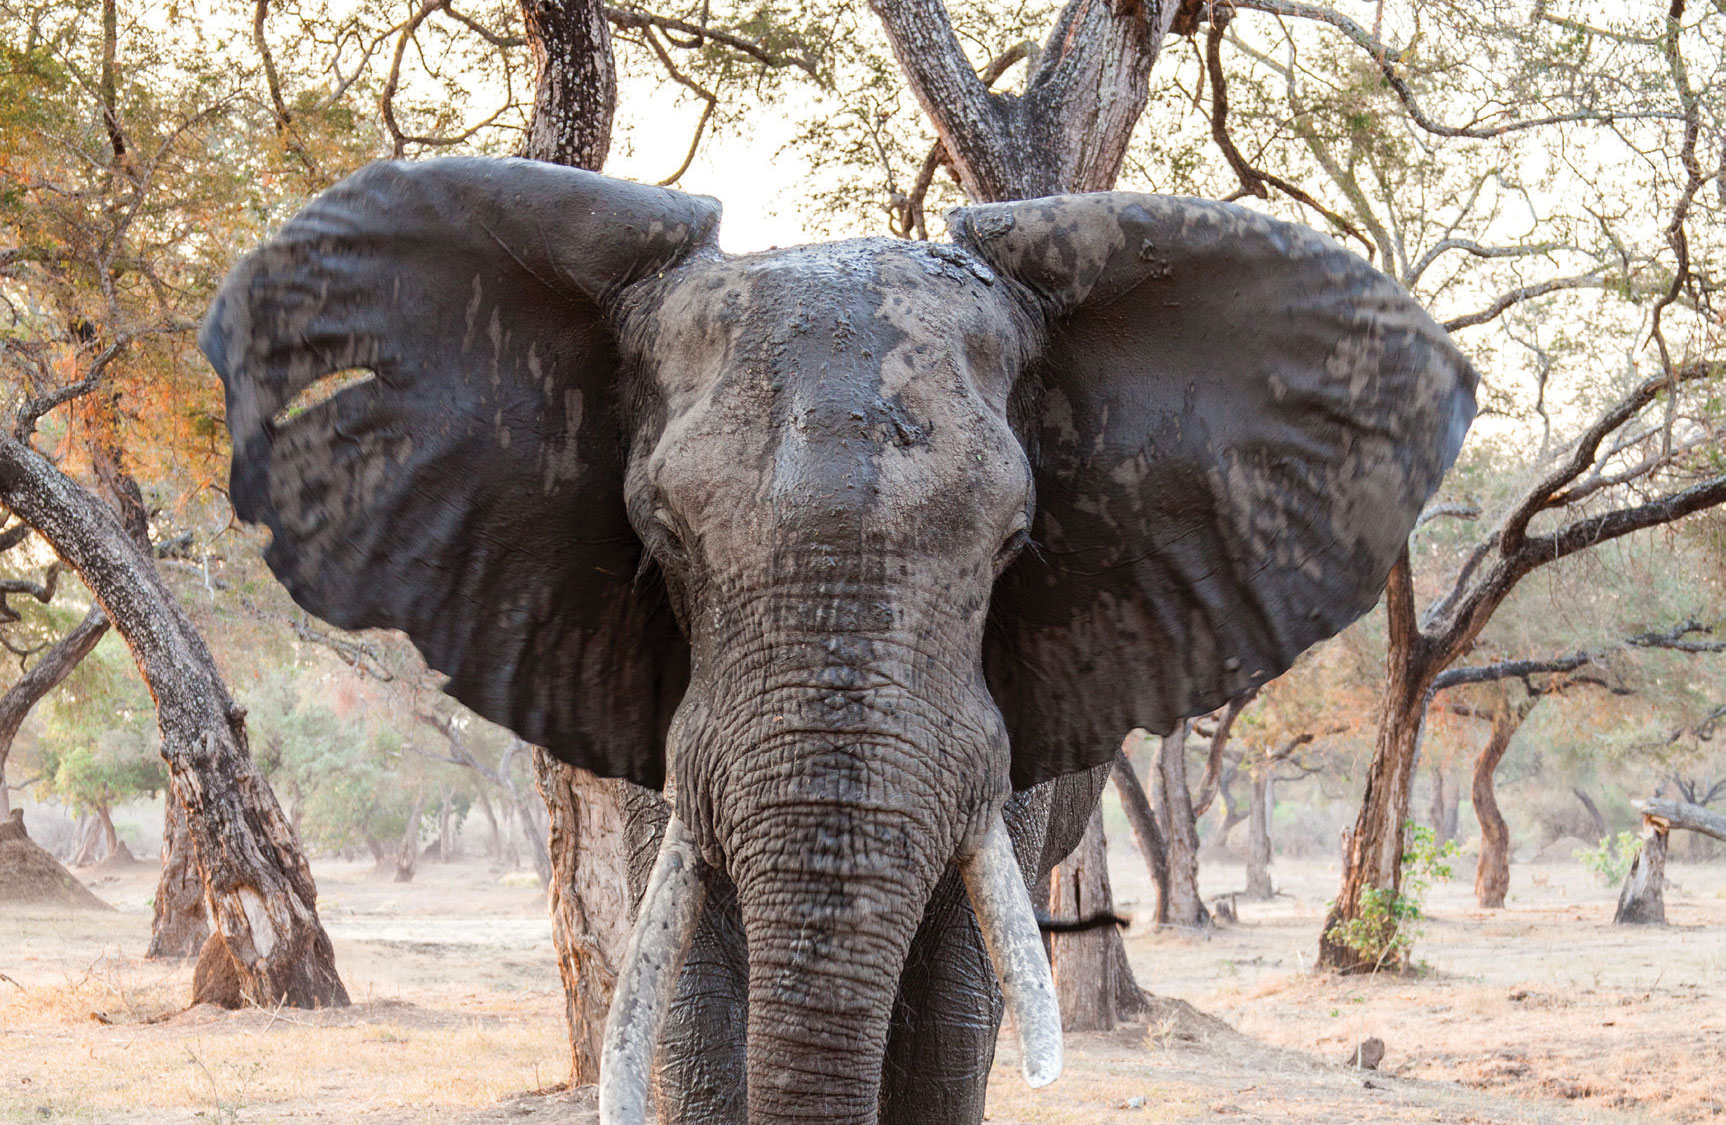 South African tourist dies after being trampled by elephant in Mana Pools